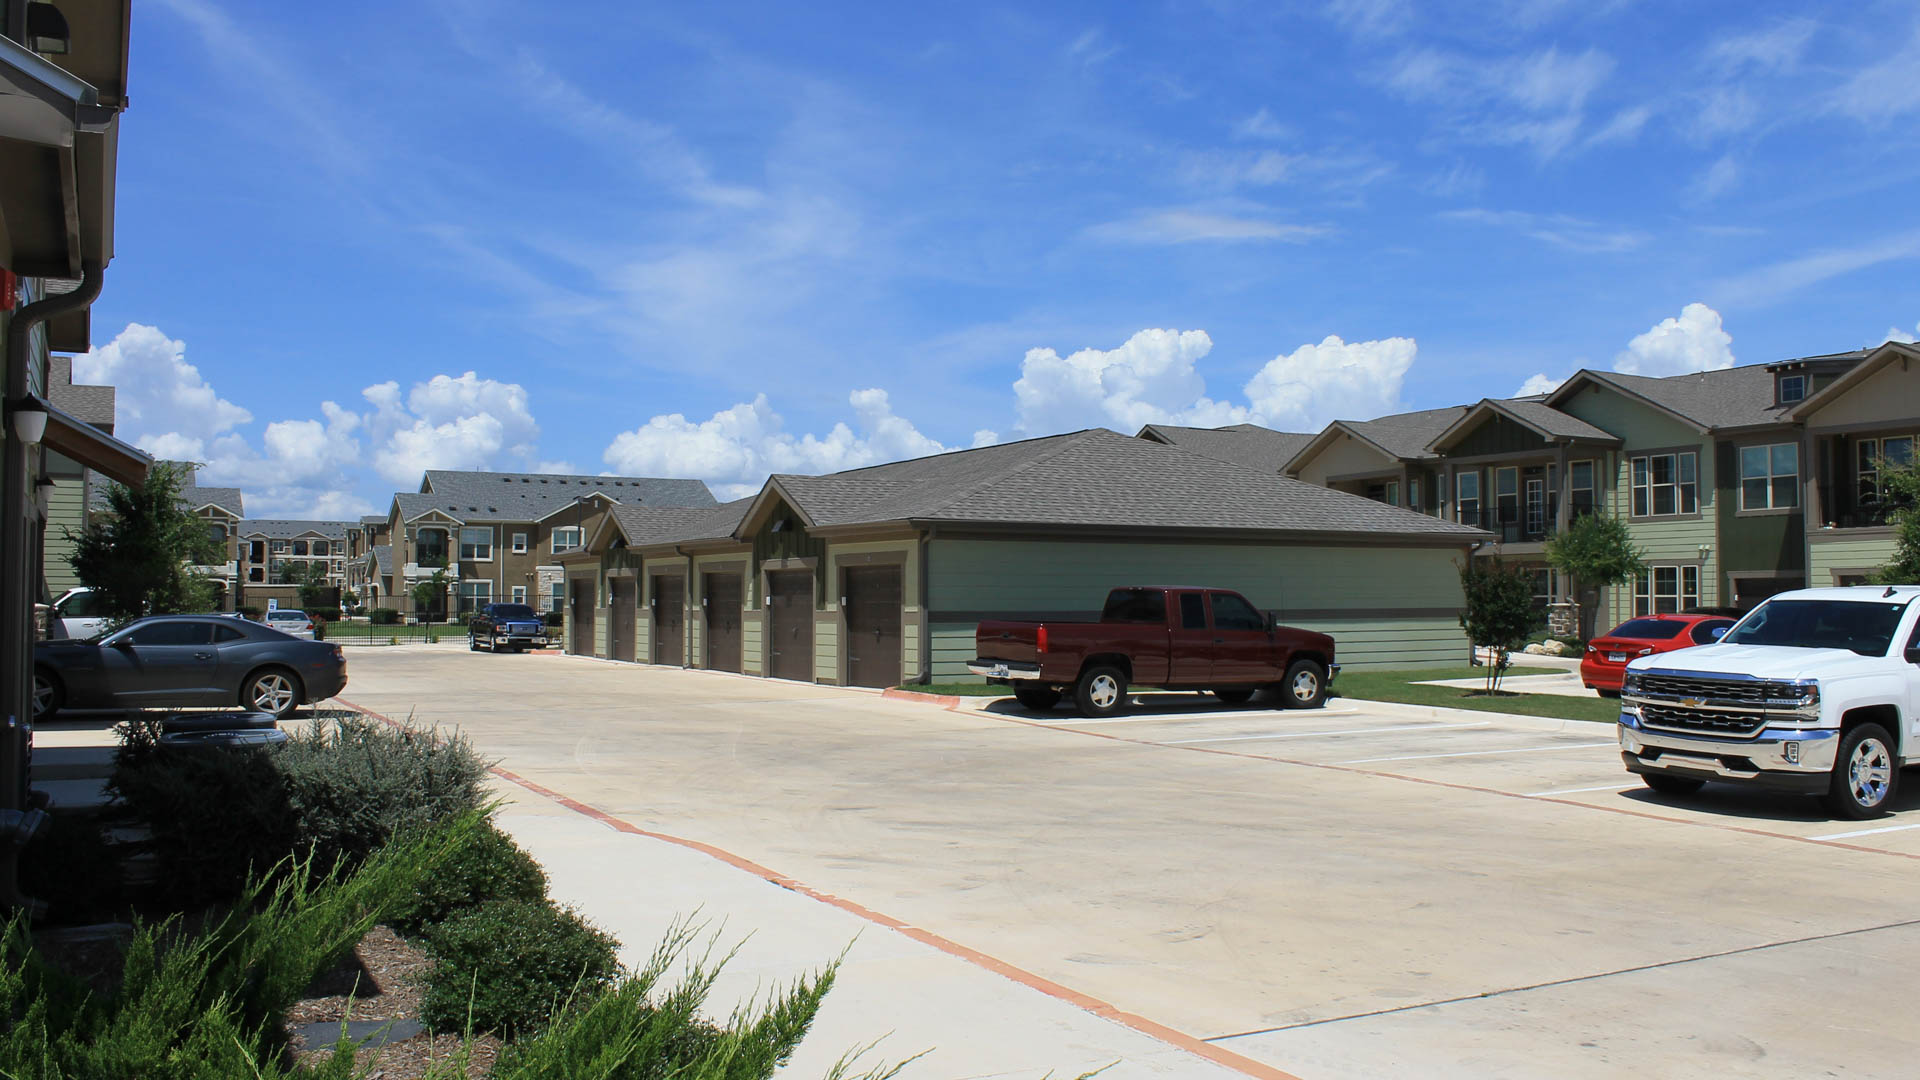 Detached garages at Springs at Creekside in New Braunfels